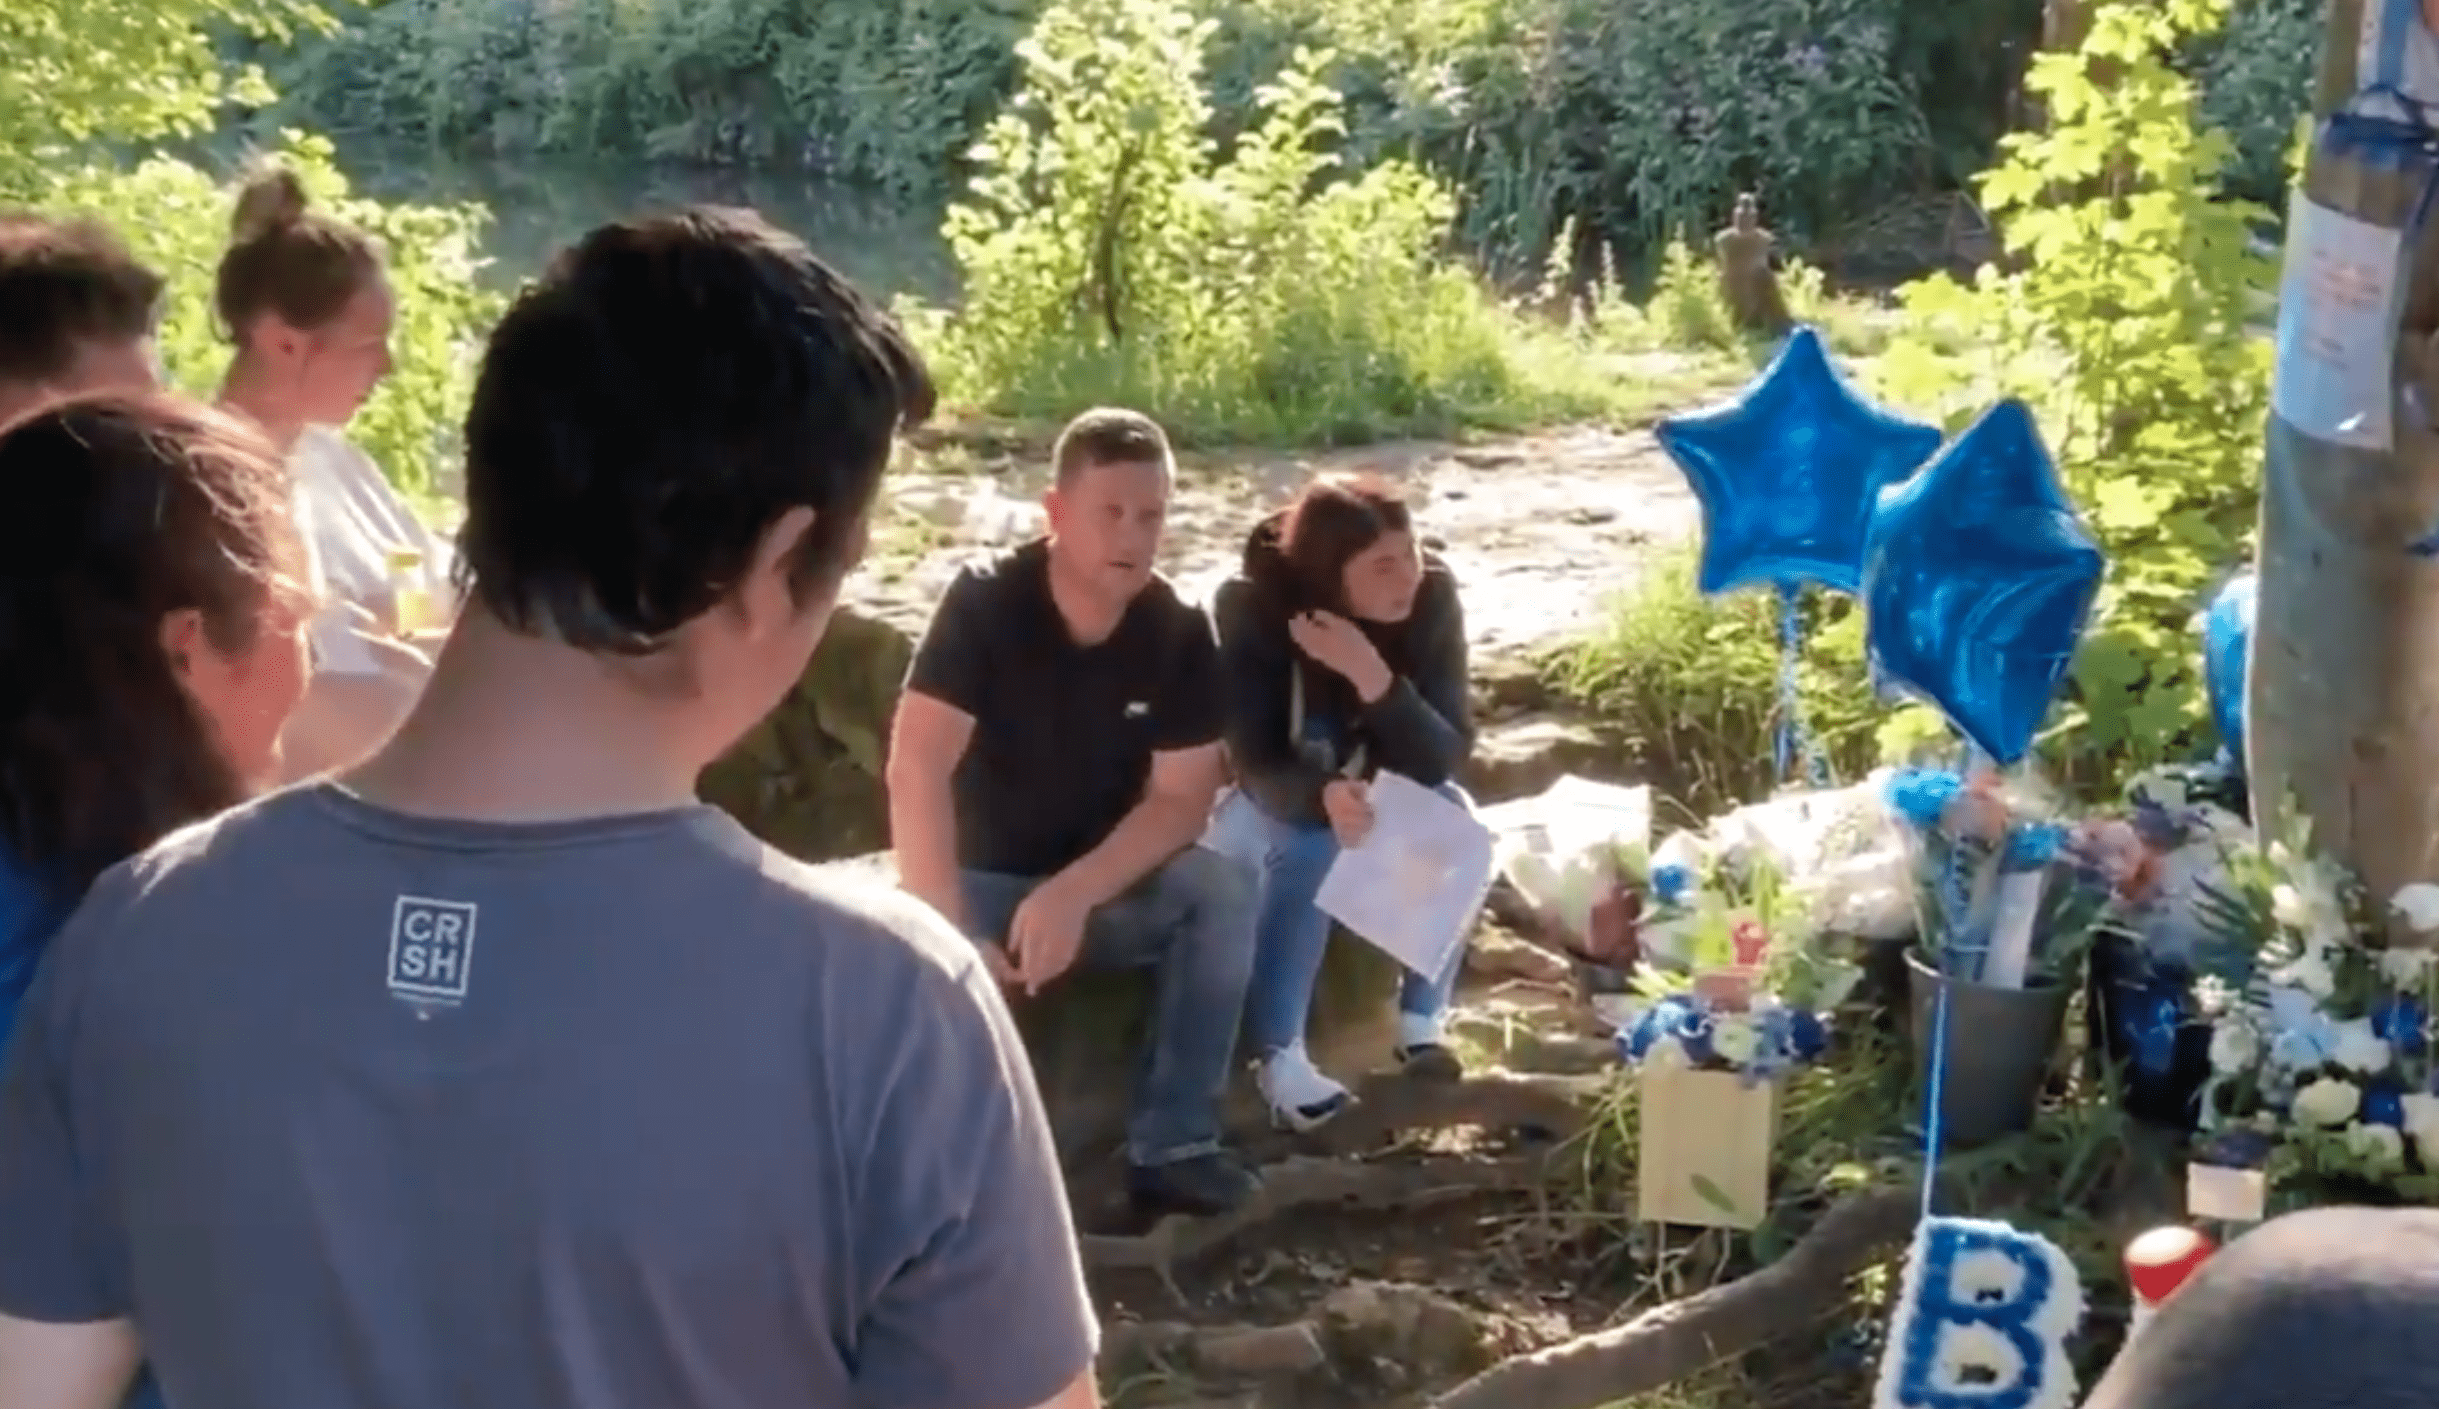 Loved ones gather next to a canal with balloons and cards to honor a young boy who drowned   Photo: Twitter/GHR_Derbyshire